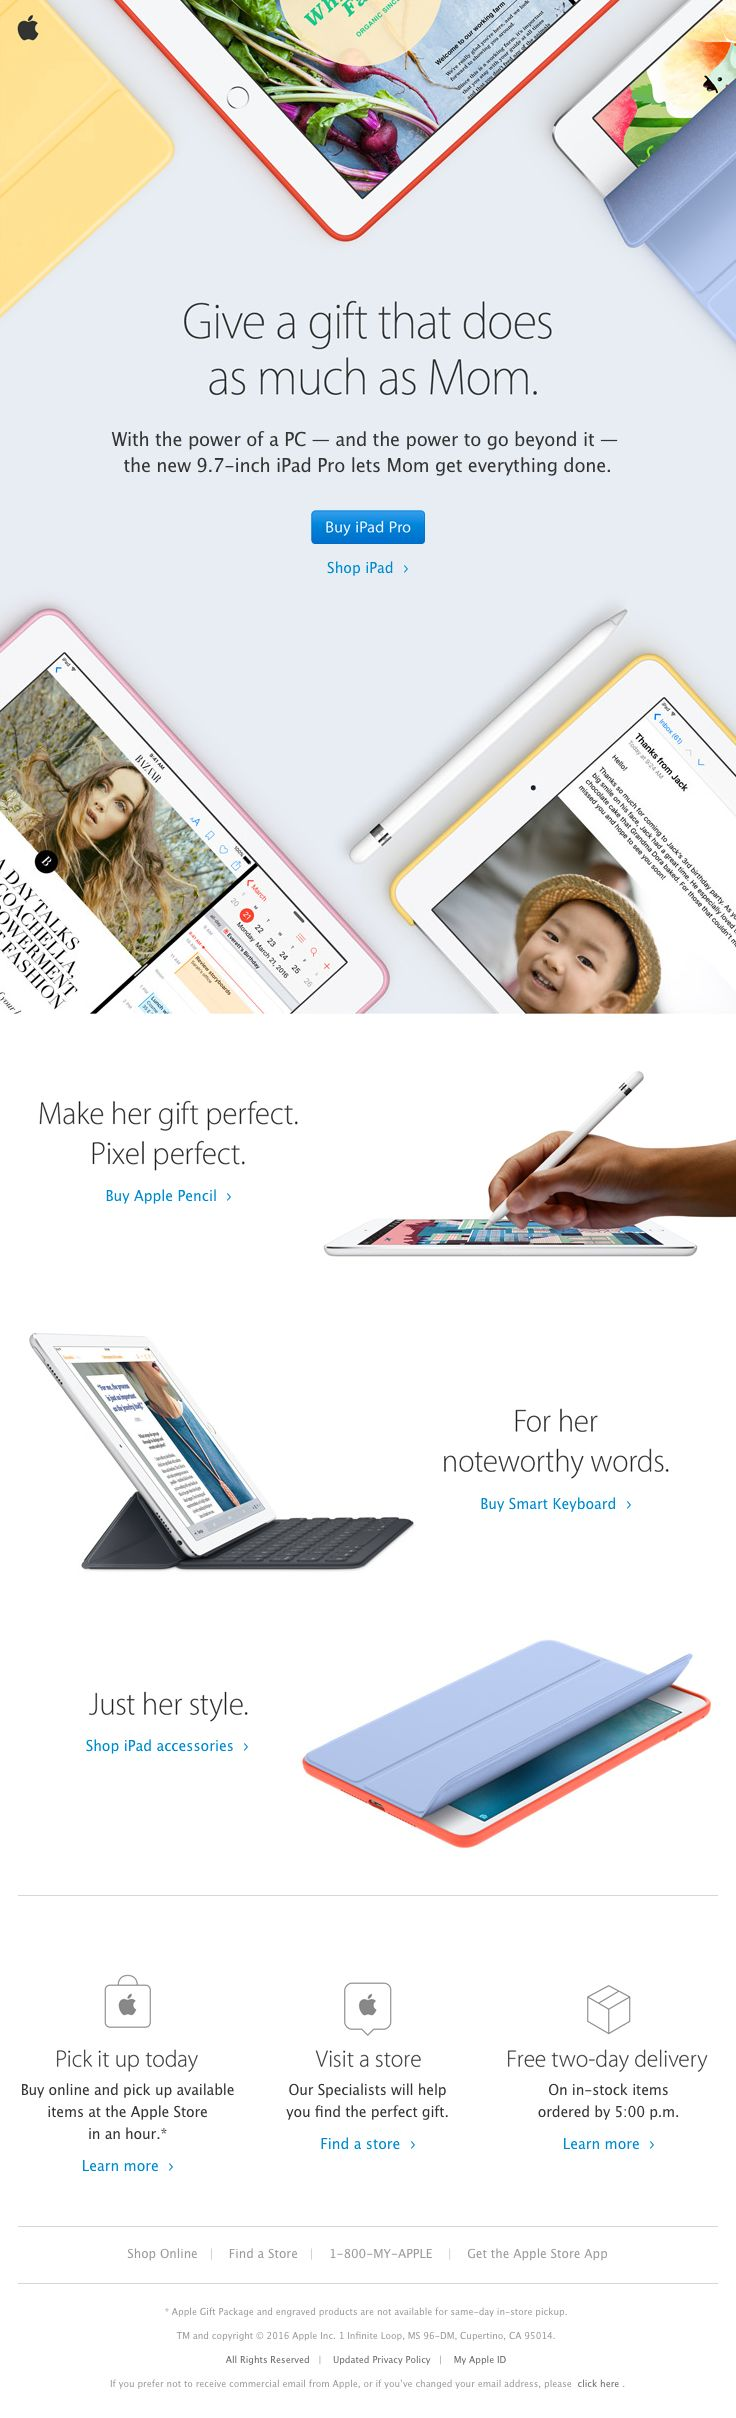 Apple sent this email with the subject line: The perfect gift. Just in time for Mother's Day - Read about this email and find more promotion emails at ReallyGoodEmails.com #ecommerce #holiday #promotion